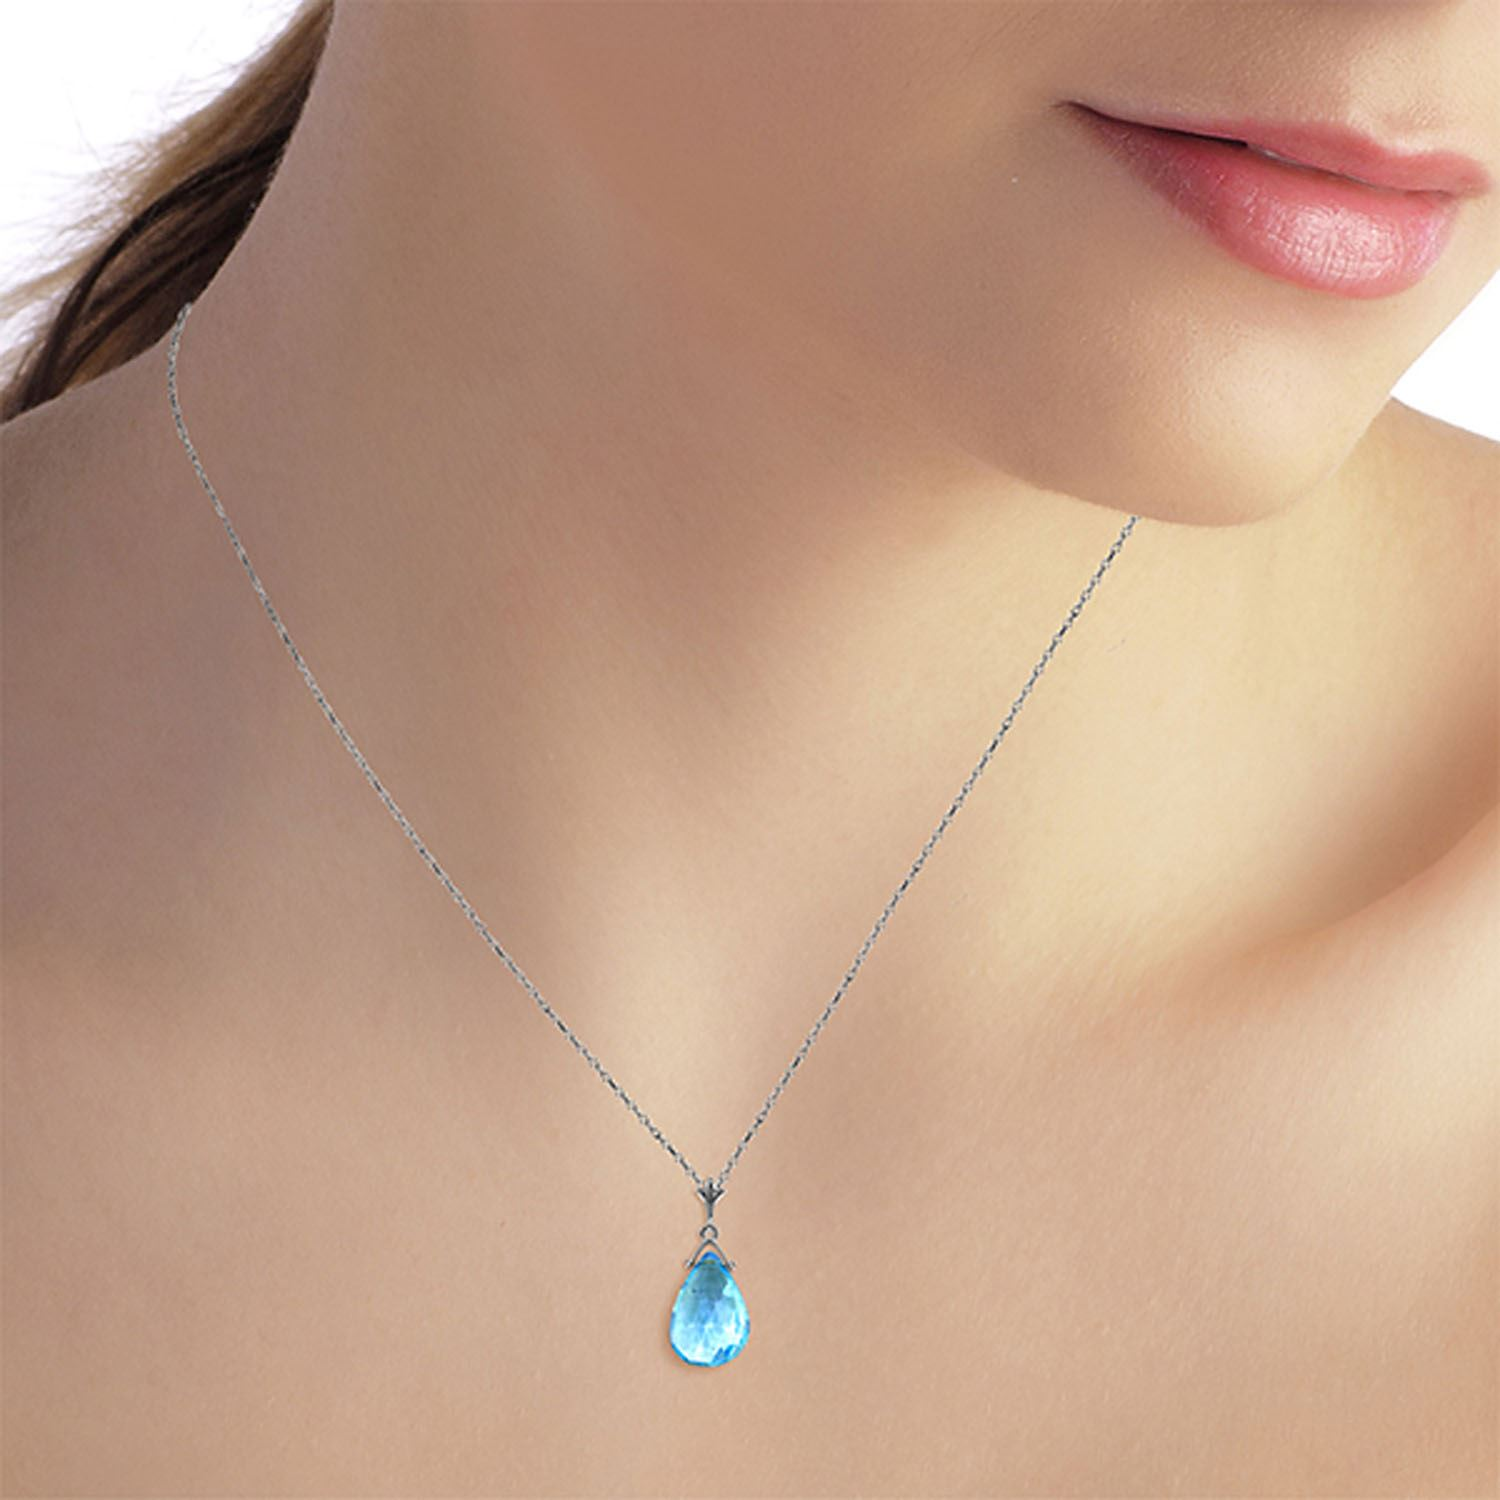 ALARRI 14K Solid Rose Gold Necklace w// Briolette Blue Topaz with 22 Inch Chain Length